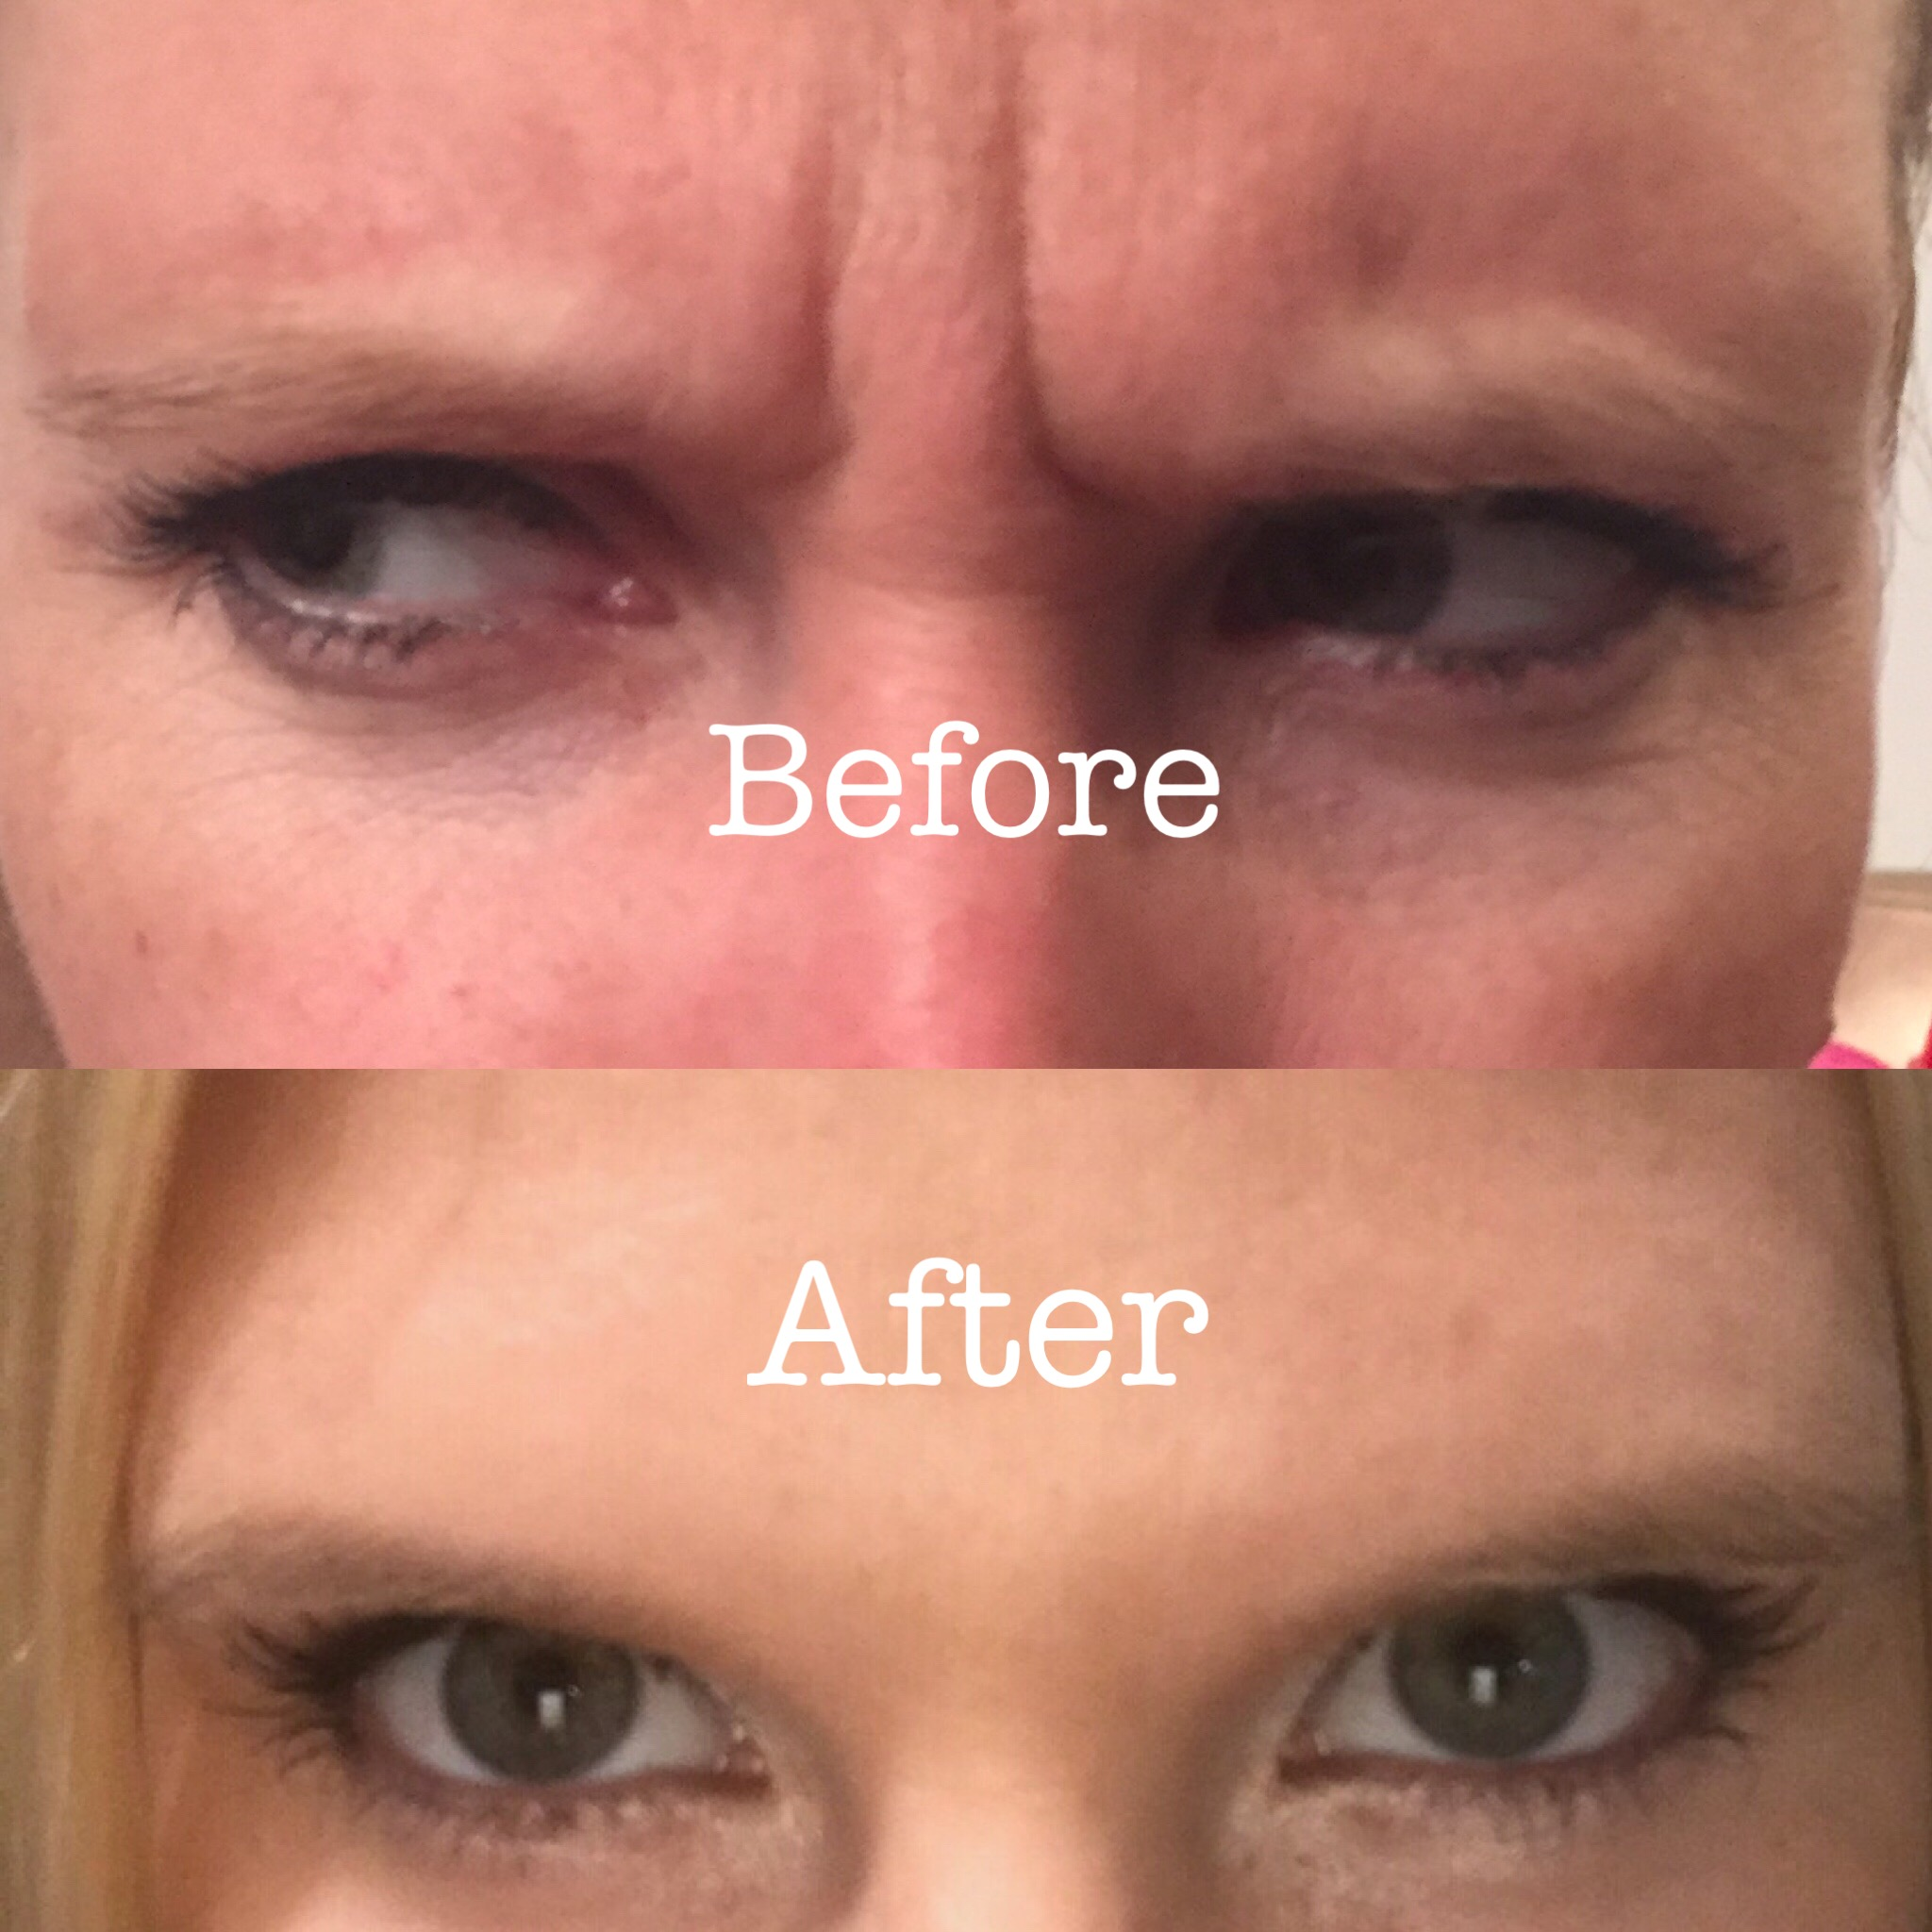 Botox to Glabella area!